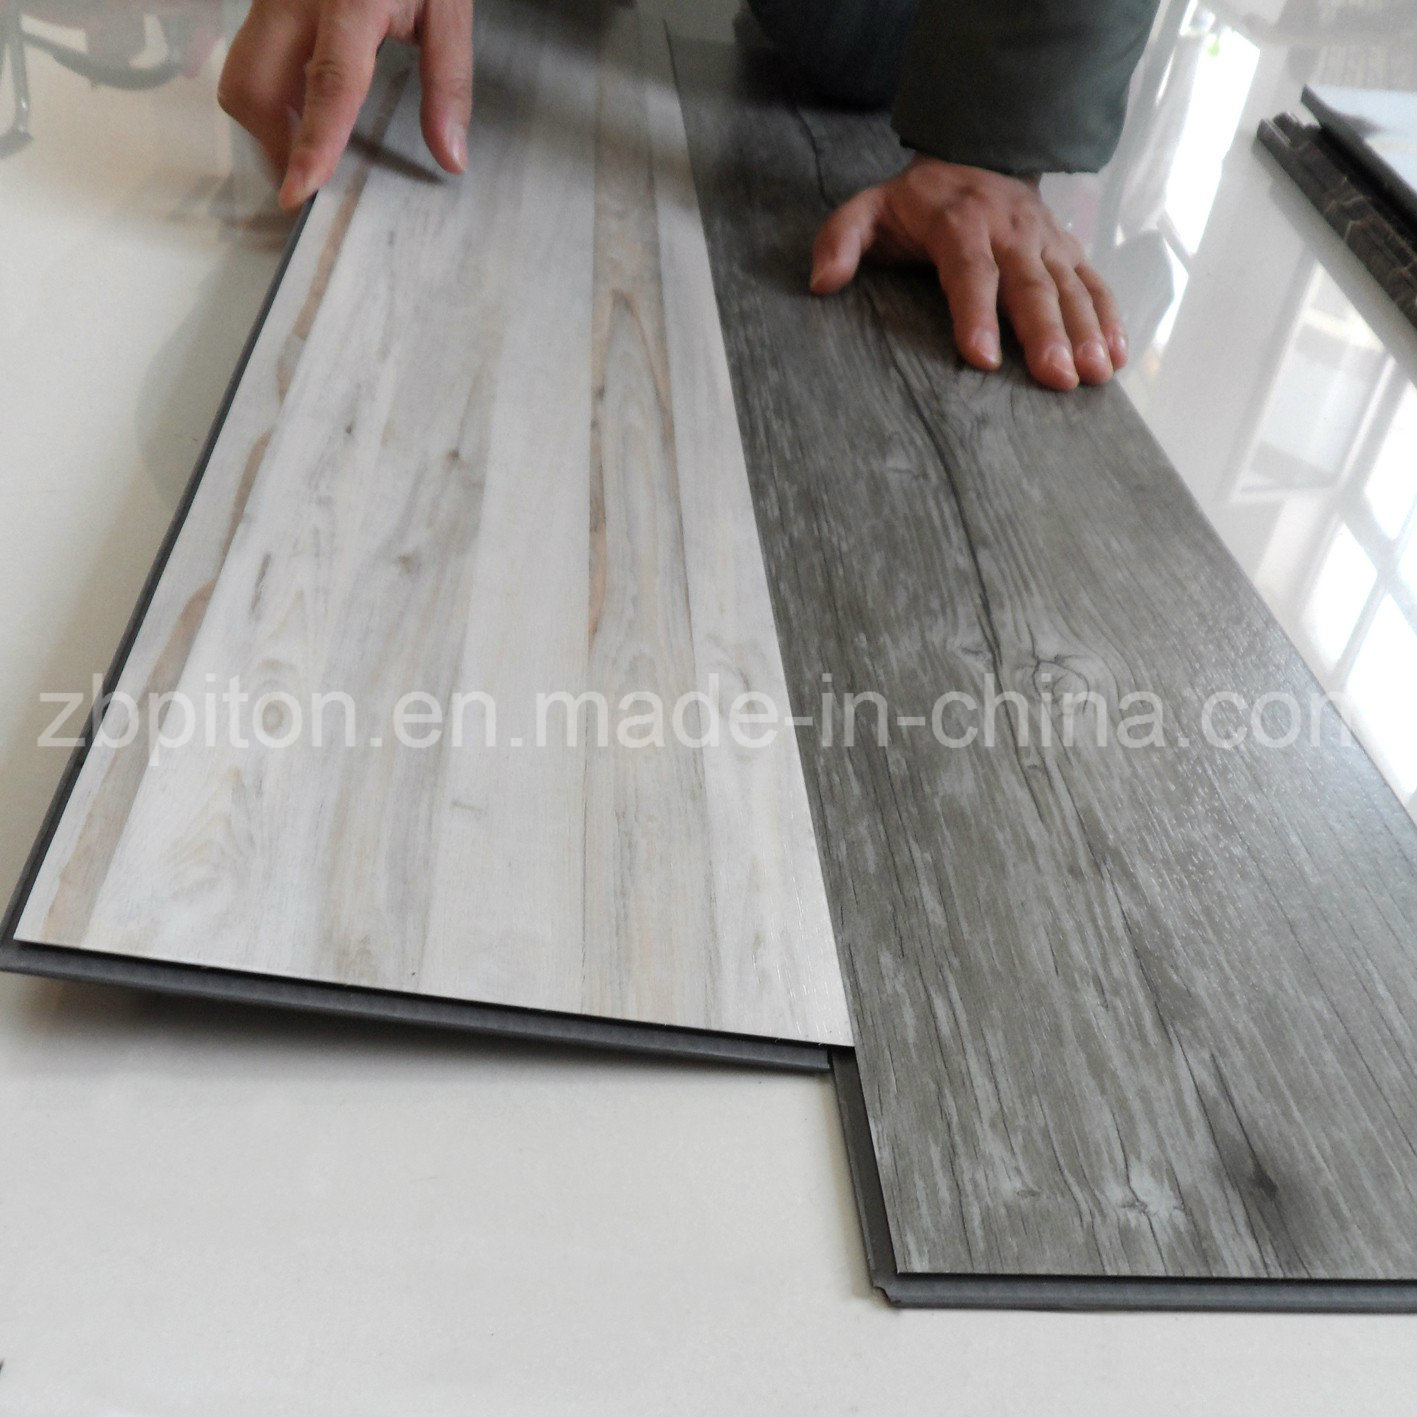 planches de luxe de plancher de pvc de tuile de vinyle de lvt photo sur fr made in. Black Bedroom Furniture Sets. Home Design Ideas